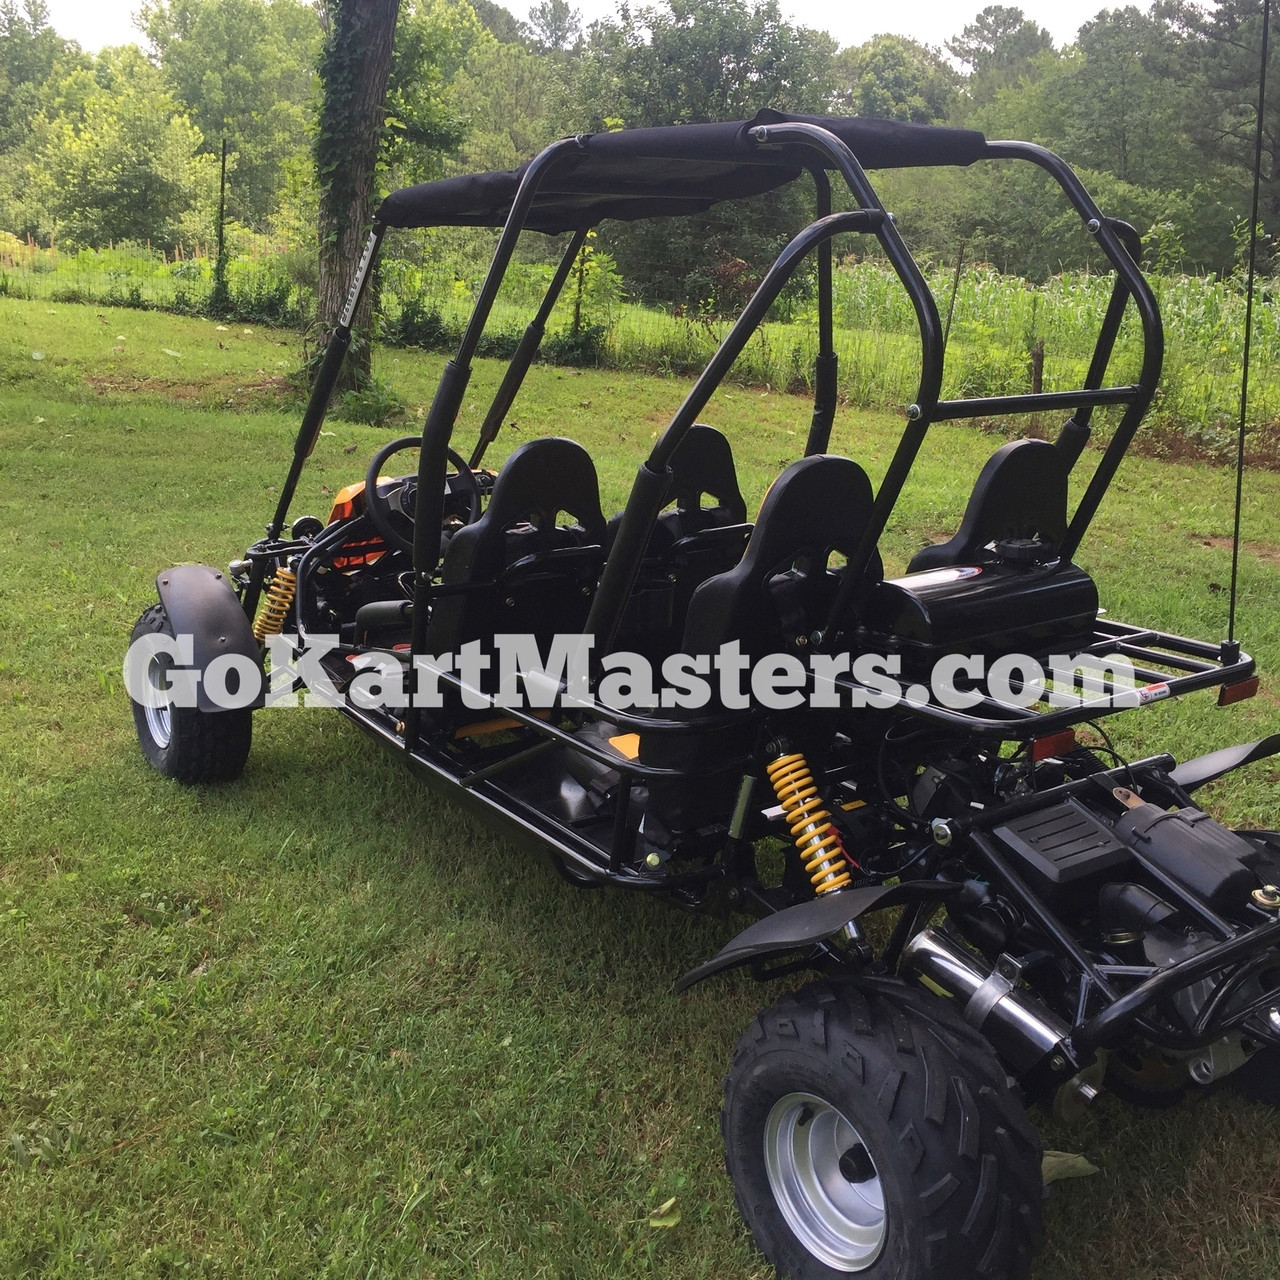 TrailMaster Blazer4 150 Go Kart - Rear View